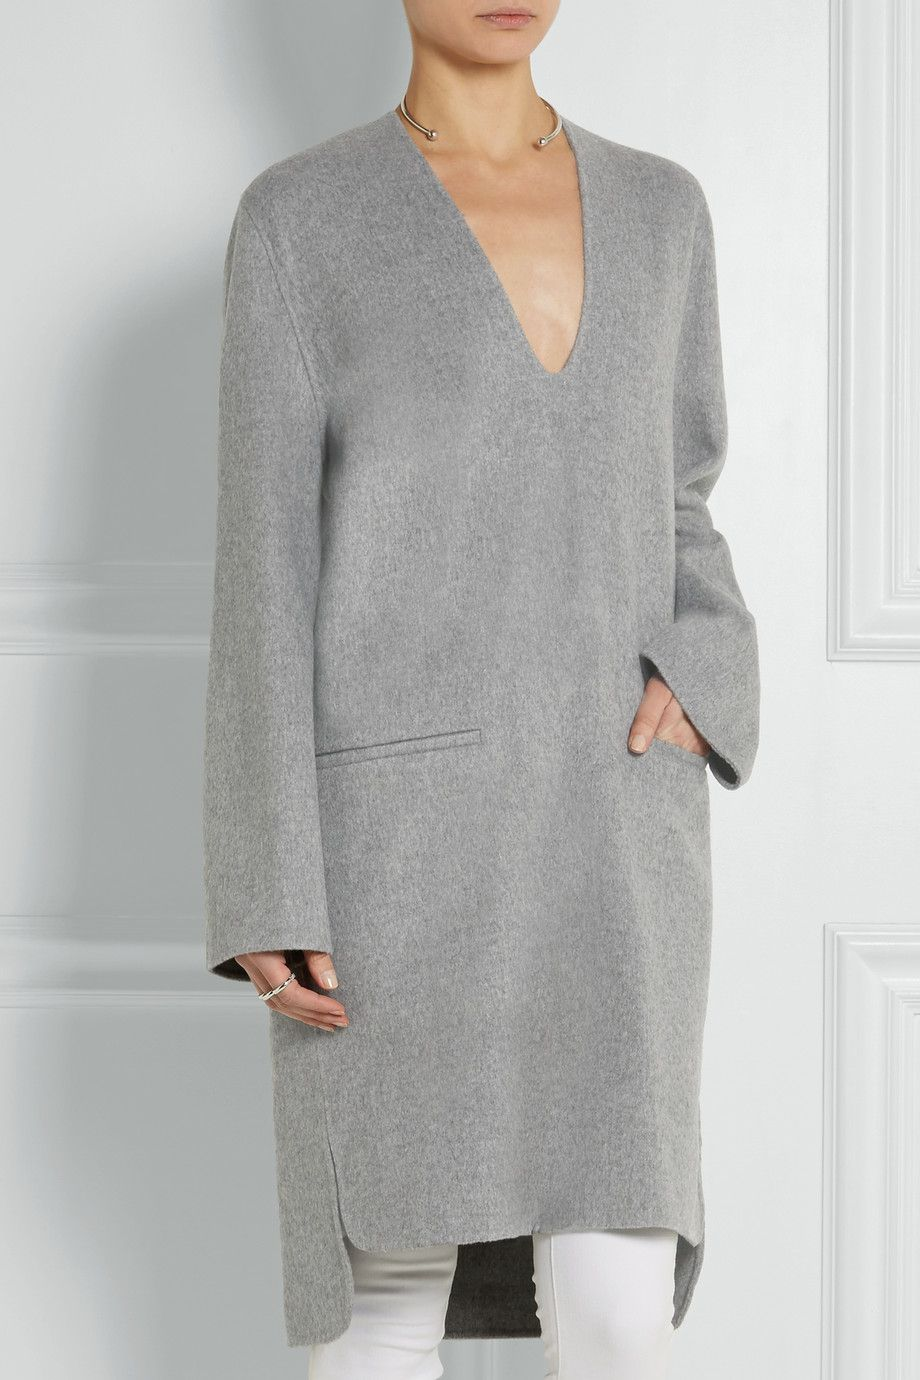 Acne Studios|Wool and cashmere-blend tunic